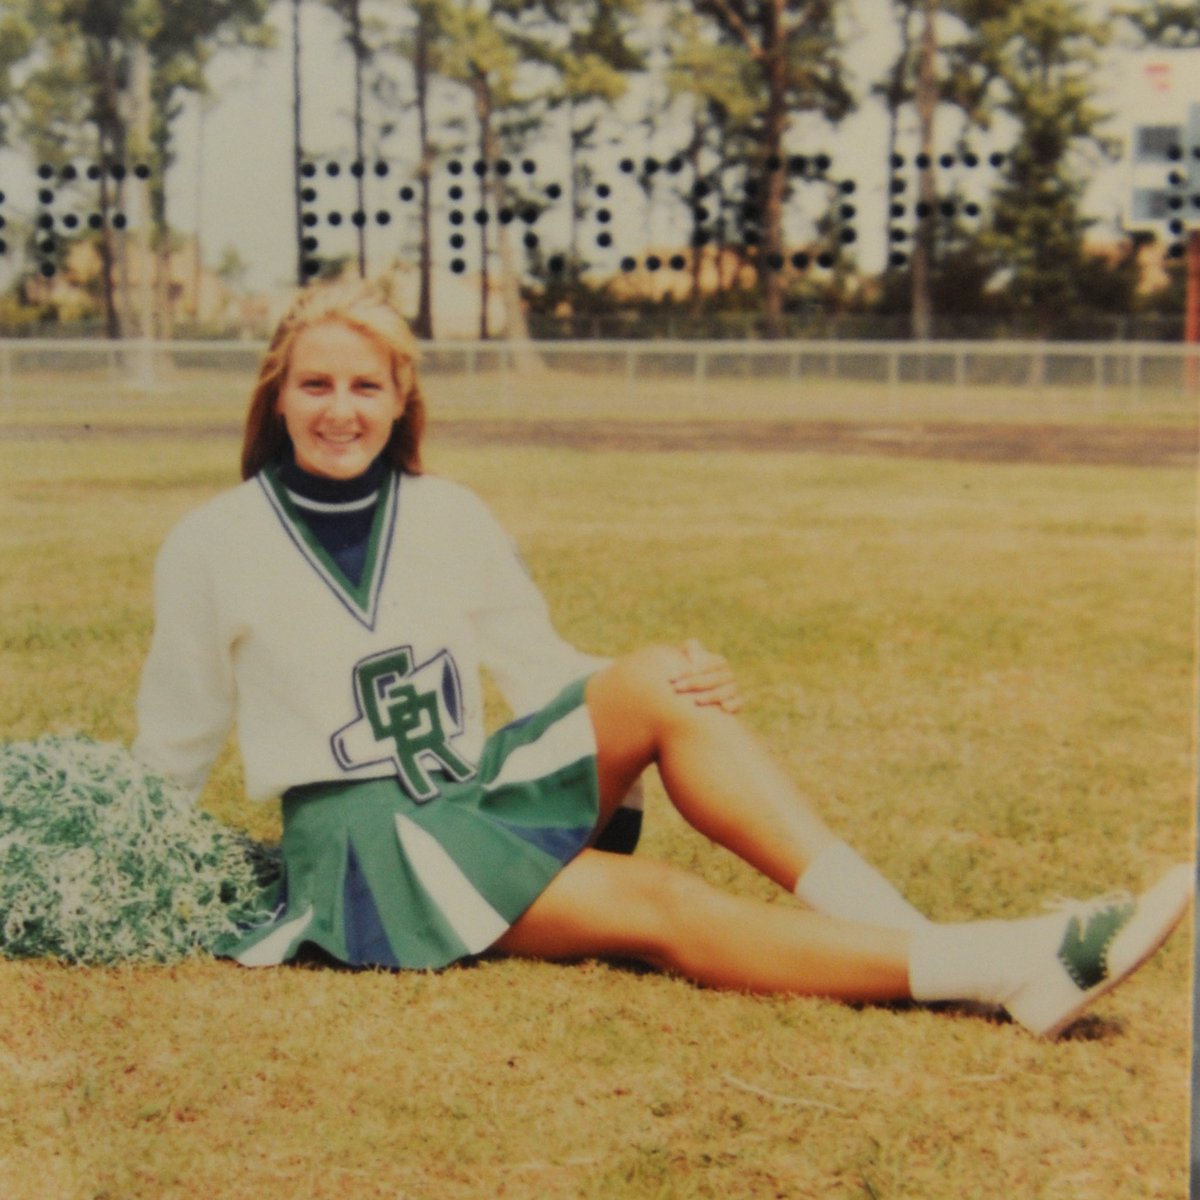 I'm in😂 @GRHS_Stallions Class of '84 #EquusWeek #ThrowbackThursday